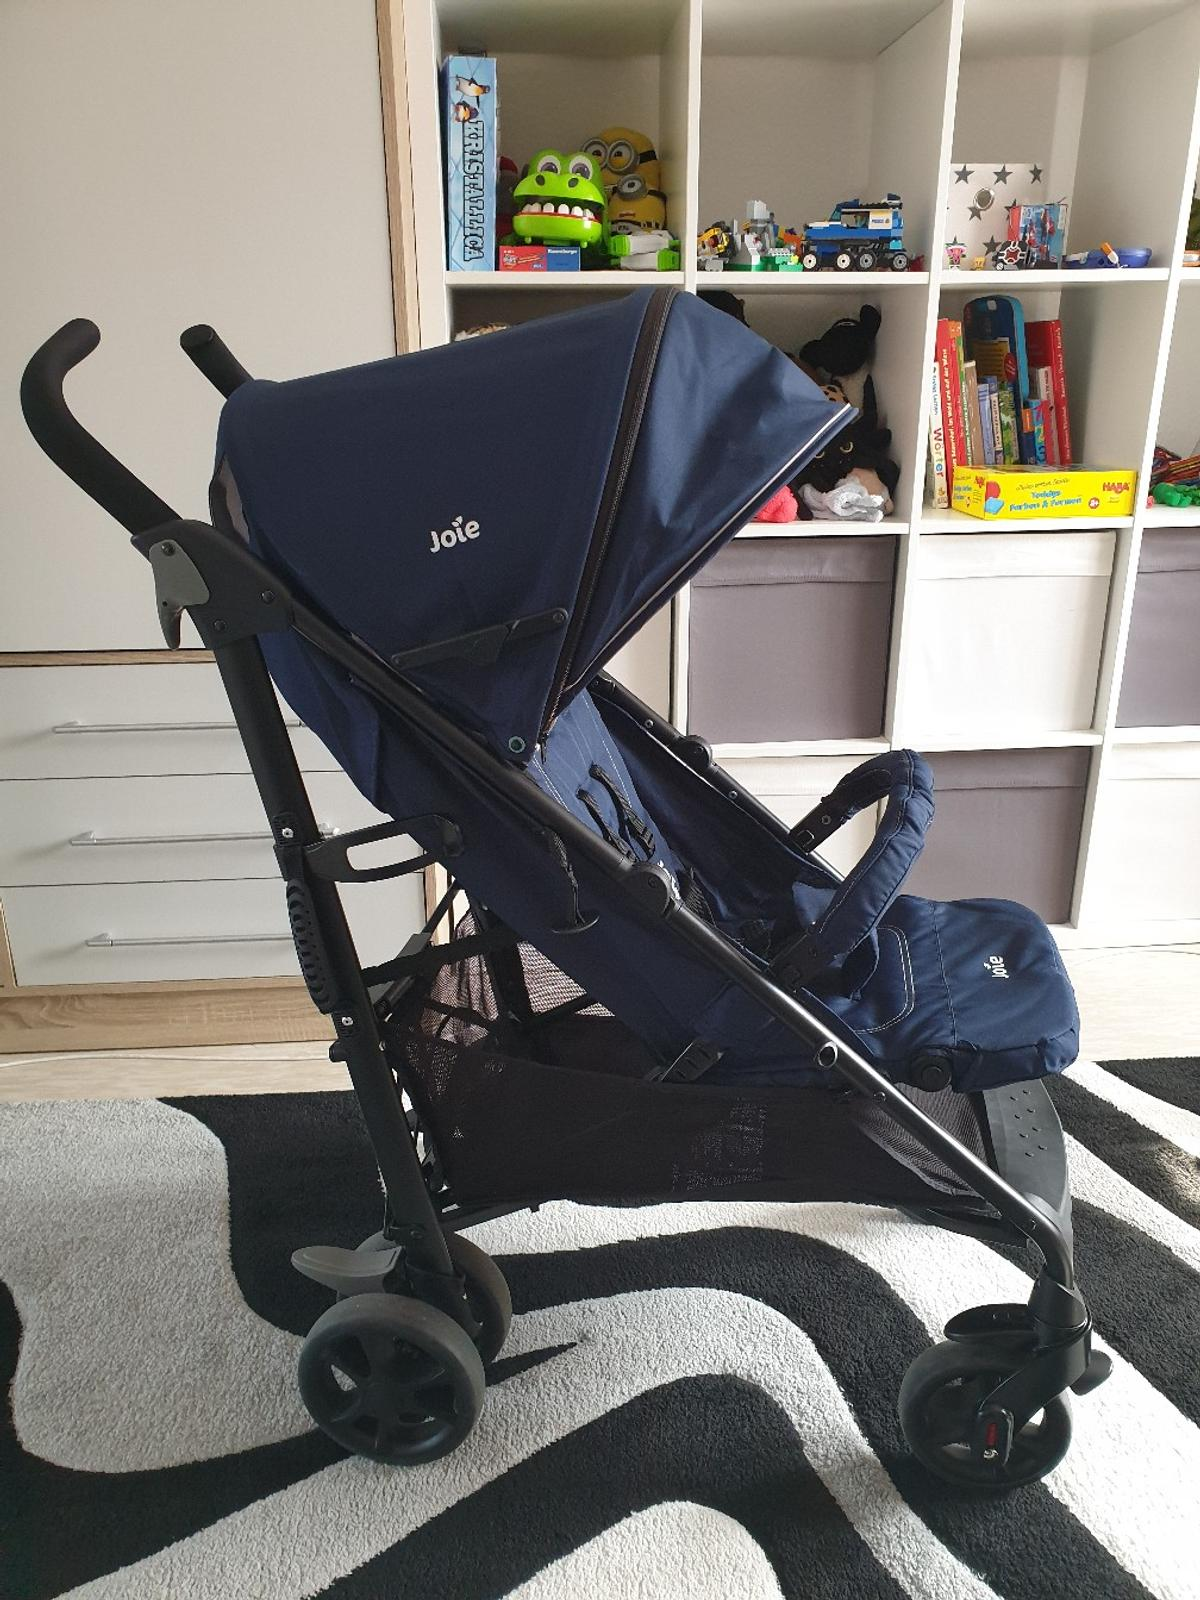 Joie Nitro Babyone Buggy Joie Brisk Lx In 60386 Frankfurt Am Main For 70 00